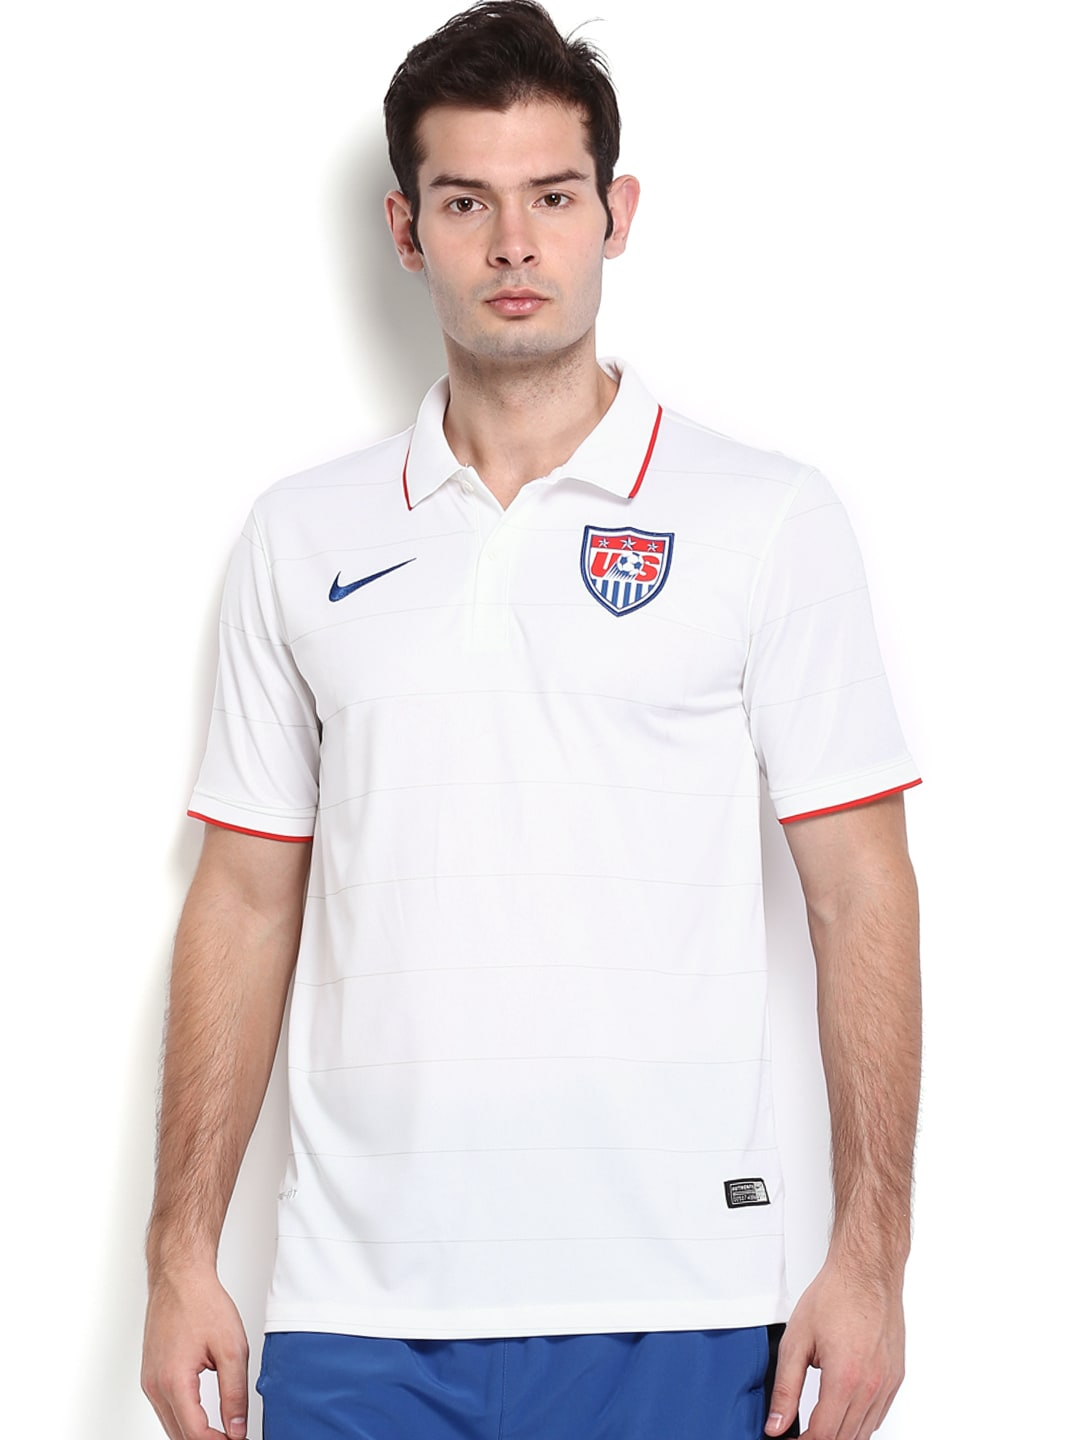 dd4554a8e1c Nike 578024-105 Men White Striped Home Us Soccer Jersey Polo T Shirt- Price  in India